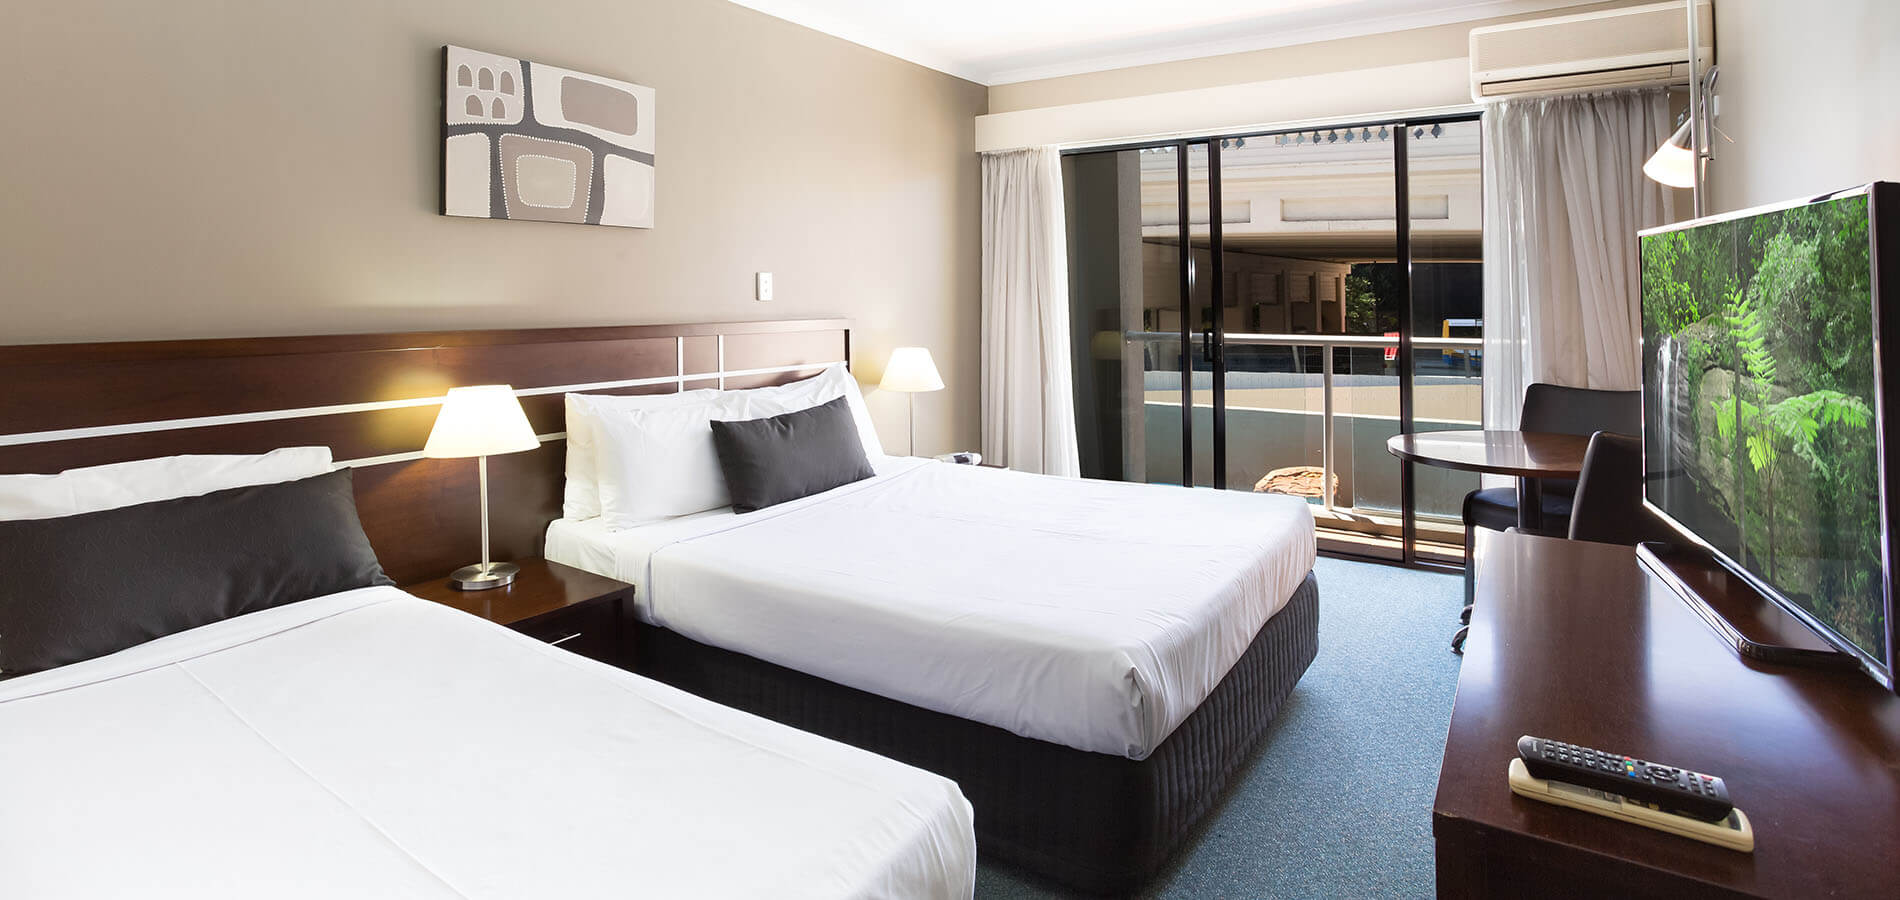 Standard Hotel Rooms Best Value Hotel Rooms In Brisbane